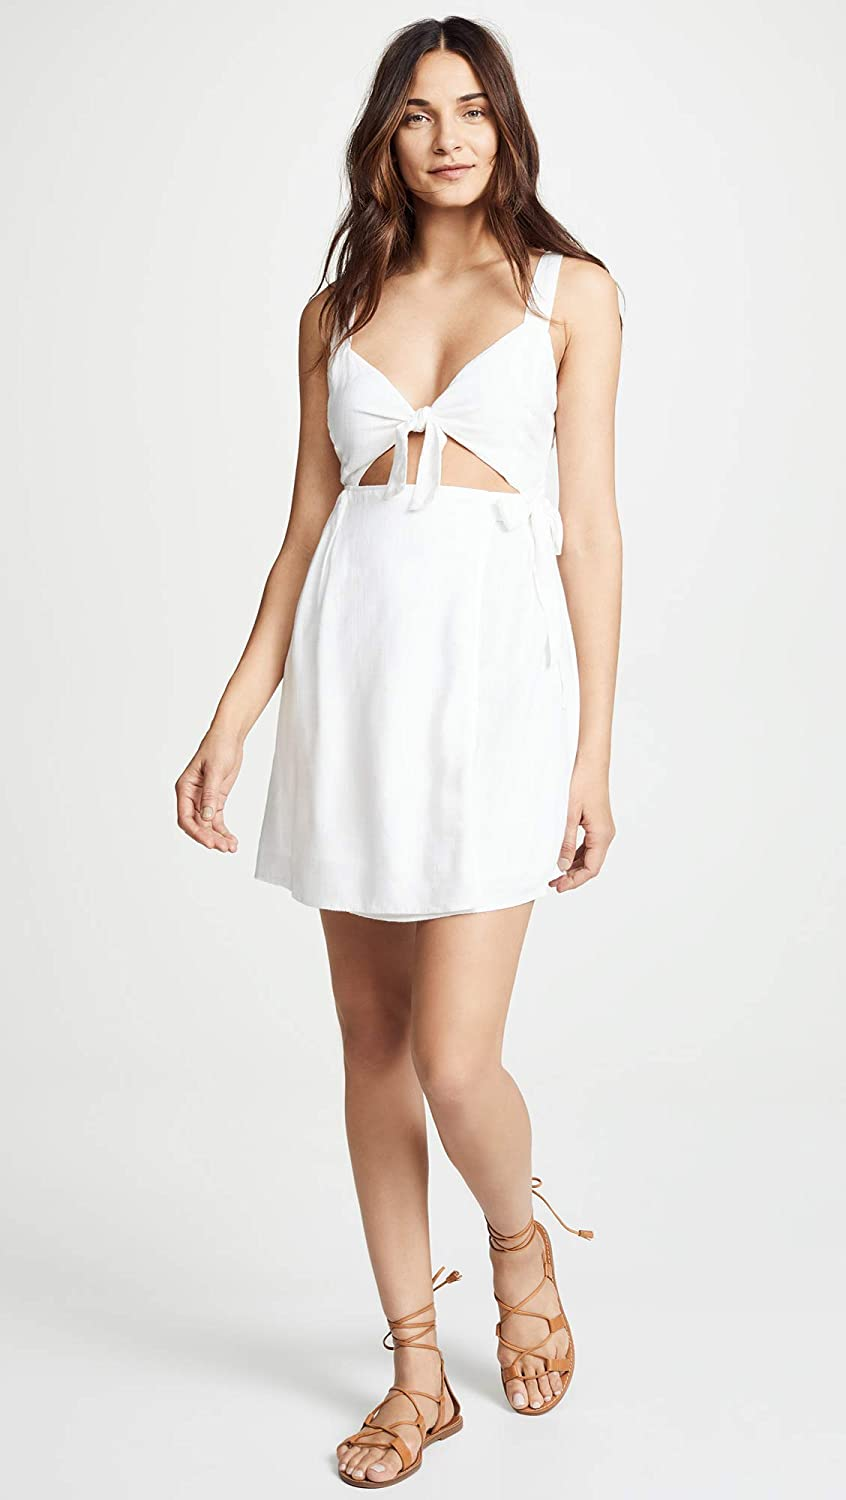 LSpace Womens Morning Star Dress